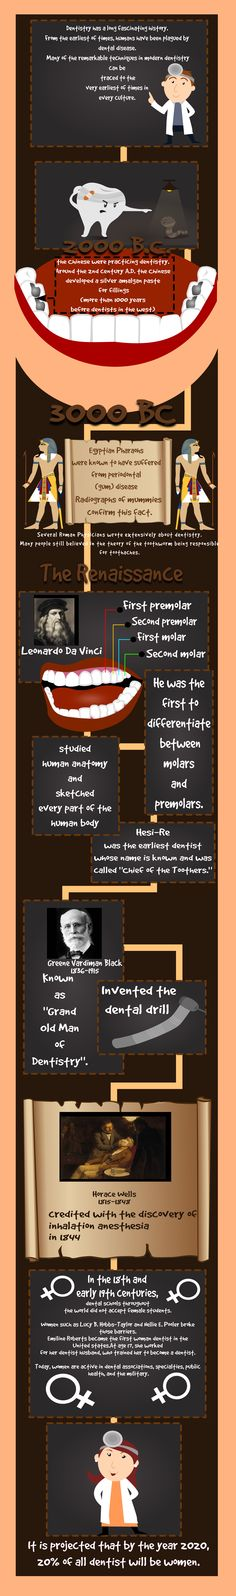 This InfoGraphic clearly explains the history of dentistry. Dentistry has evolved a lot over the last 5,000 years, and our goal was to lay out the most impactful advances in dentistry. For the average person, this infographic provides the perfect description of the history of dentistry over the last few thousand years. From the Chinese to the Egyptians to the modern dentists we have now, there is a clear path of innovation. View the infographic at…